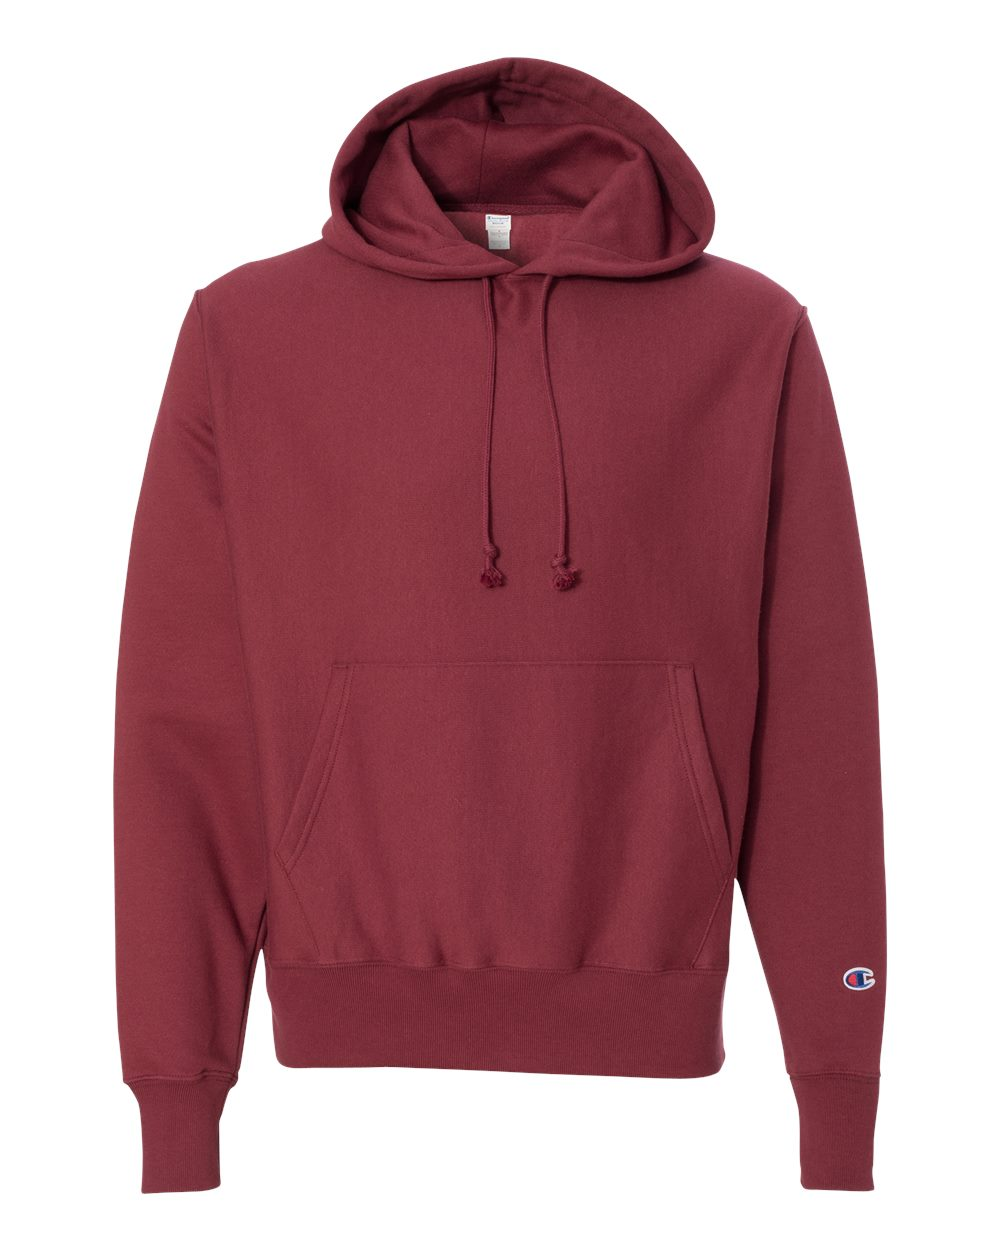 Champion-Mens-Reverse-Weave-Hooded-Pullover-Sweatshirt-S101-up-to-3XL thumbnail 18